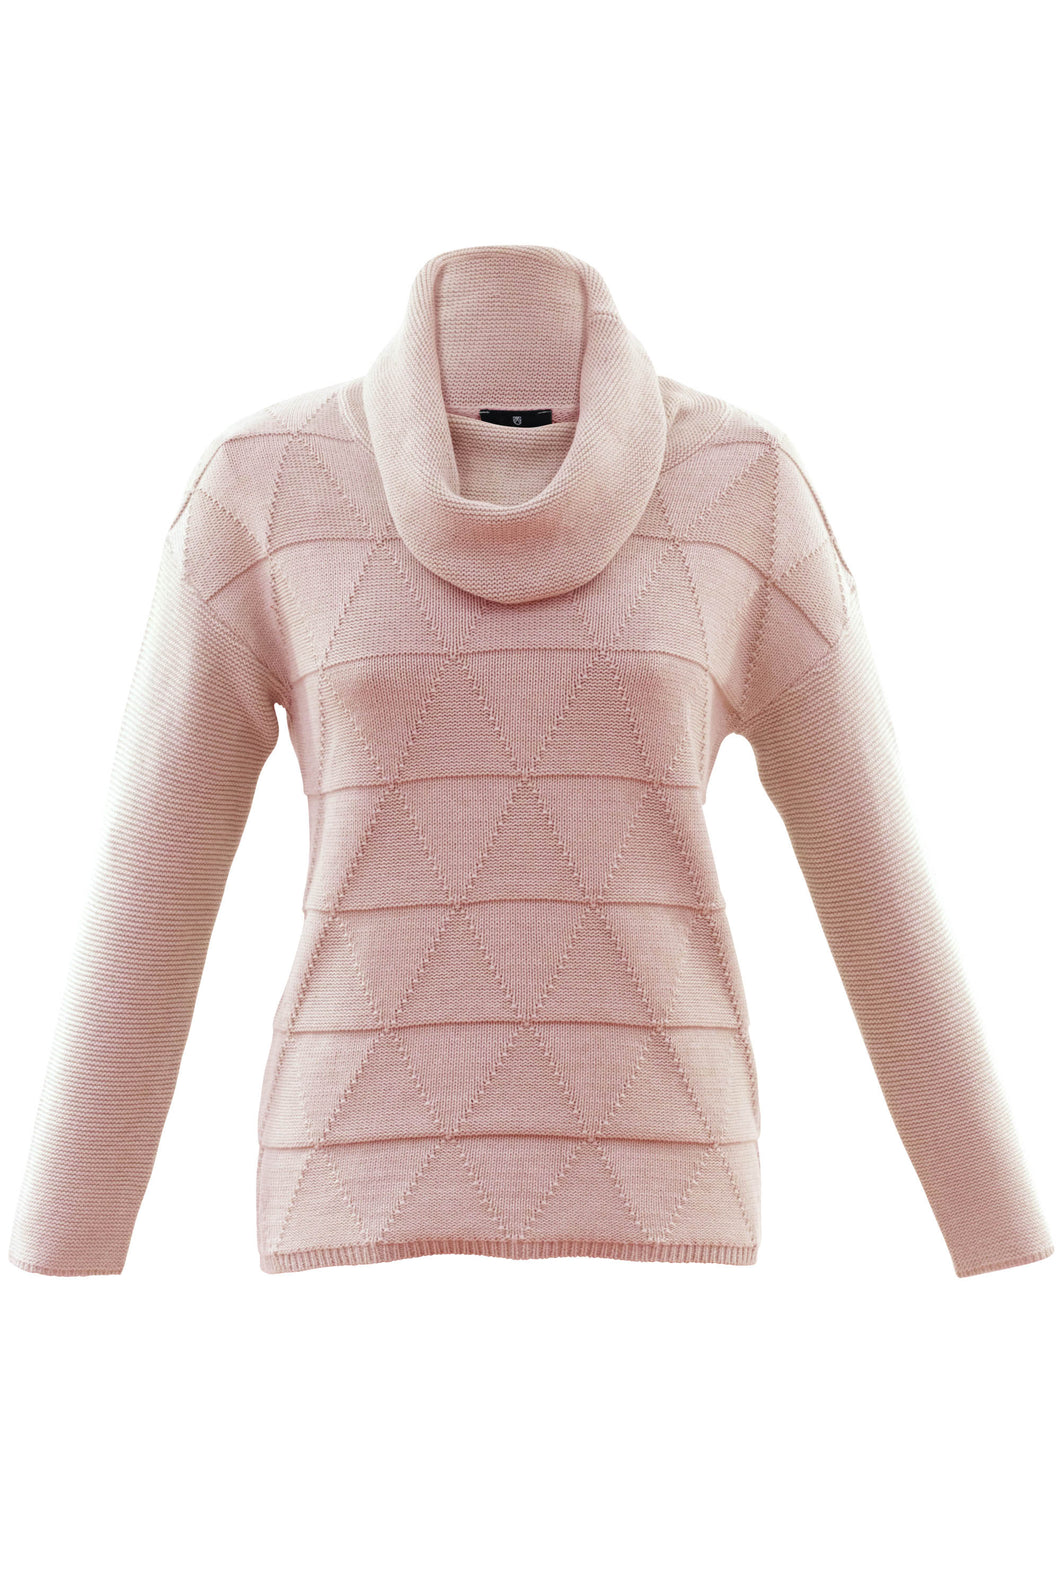 Marble Pullover - Style 5870-120